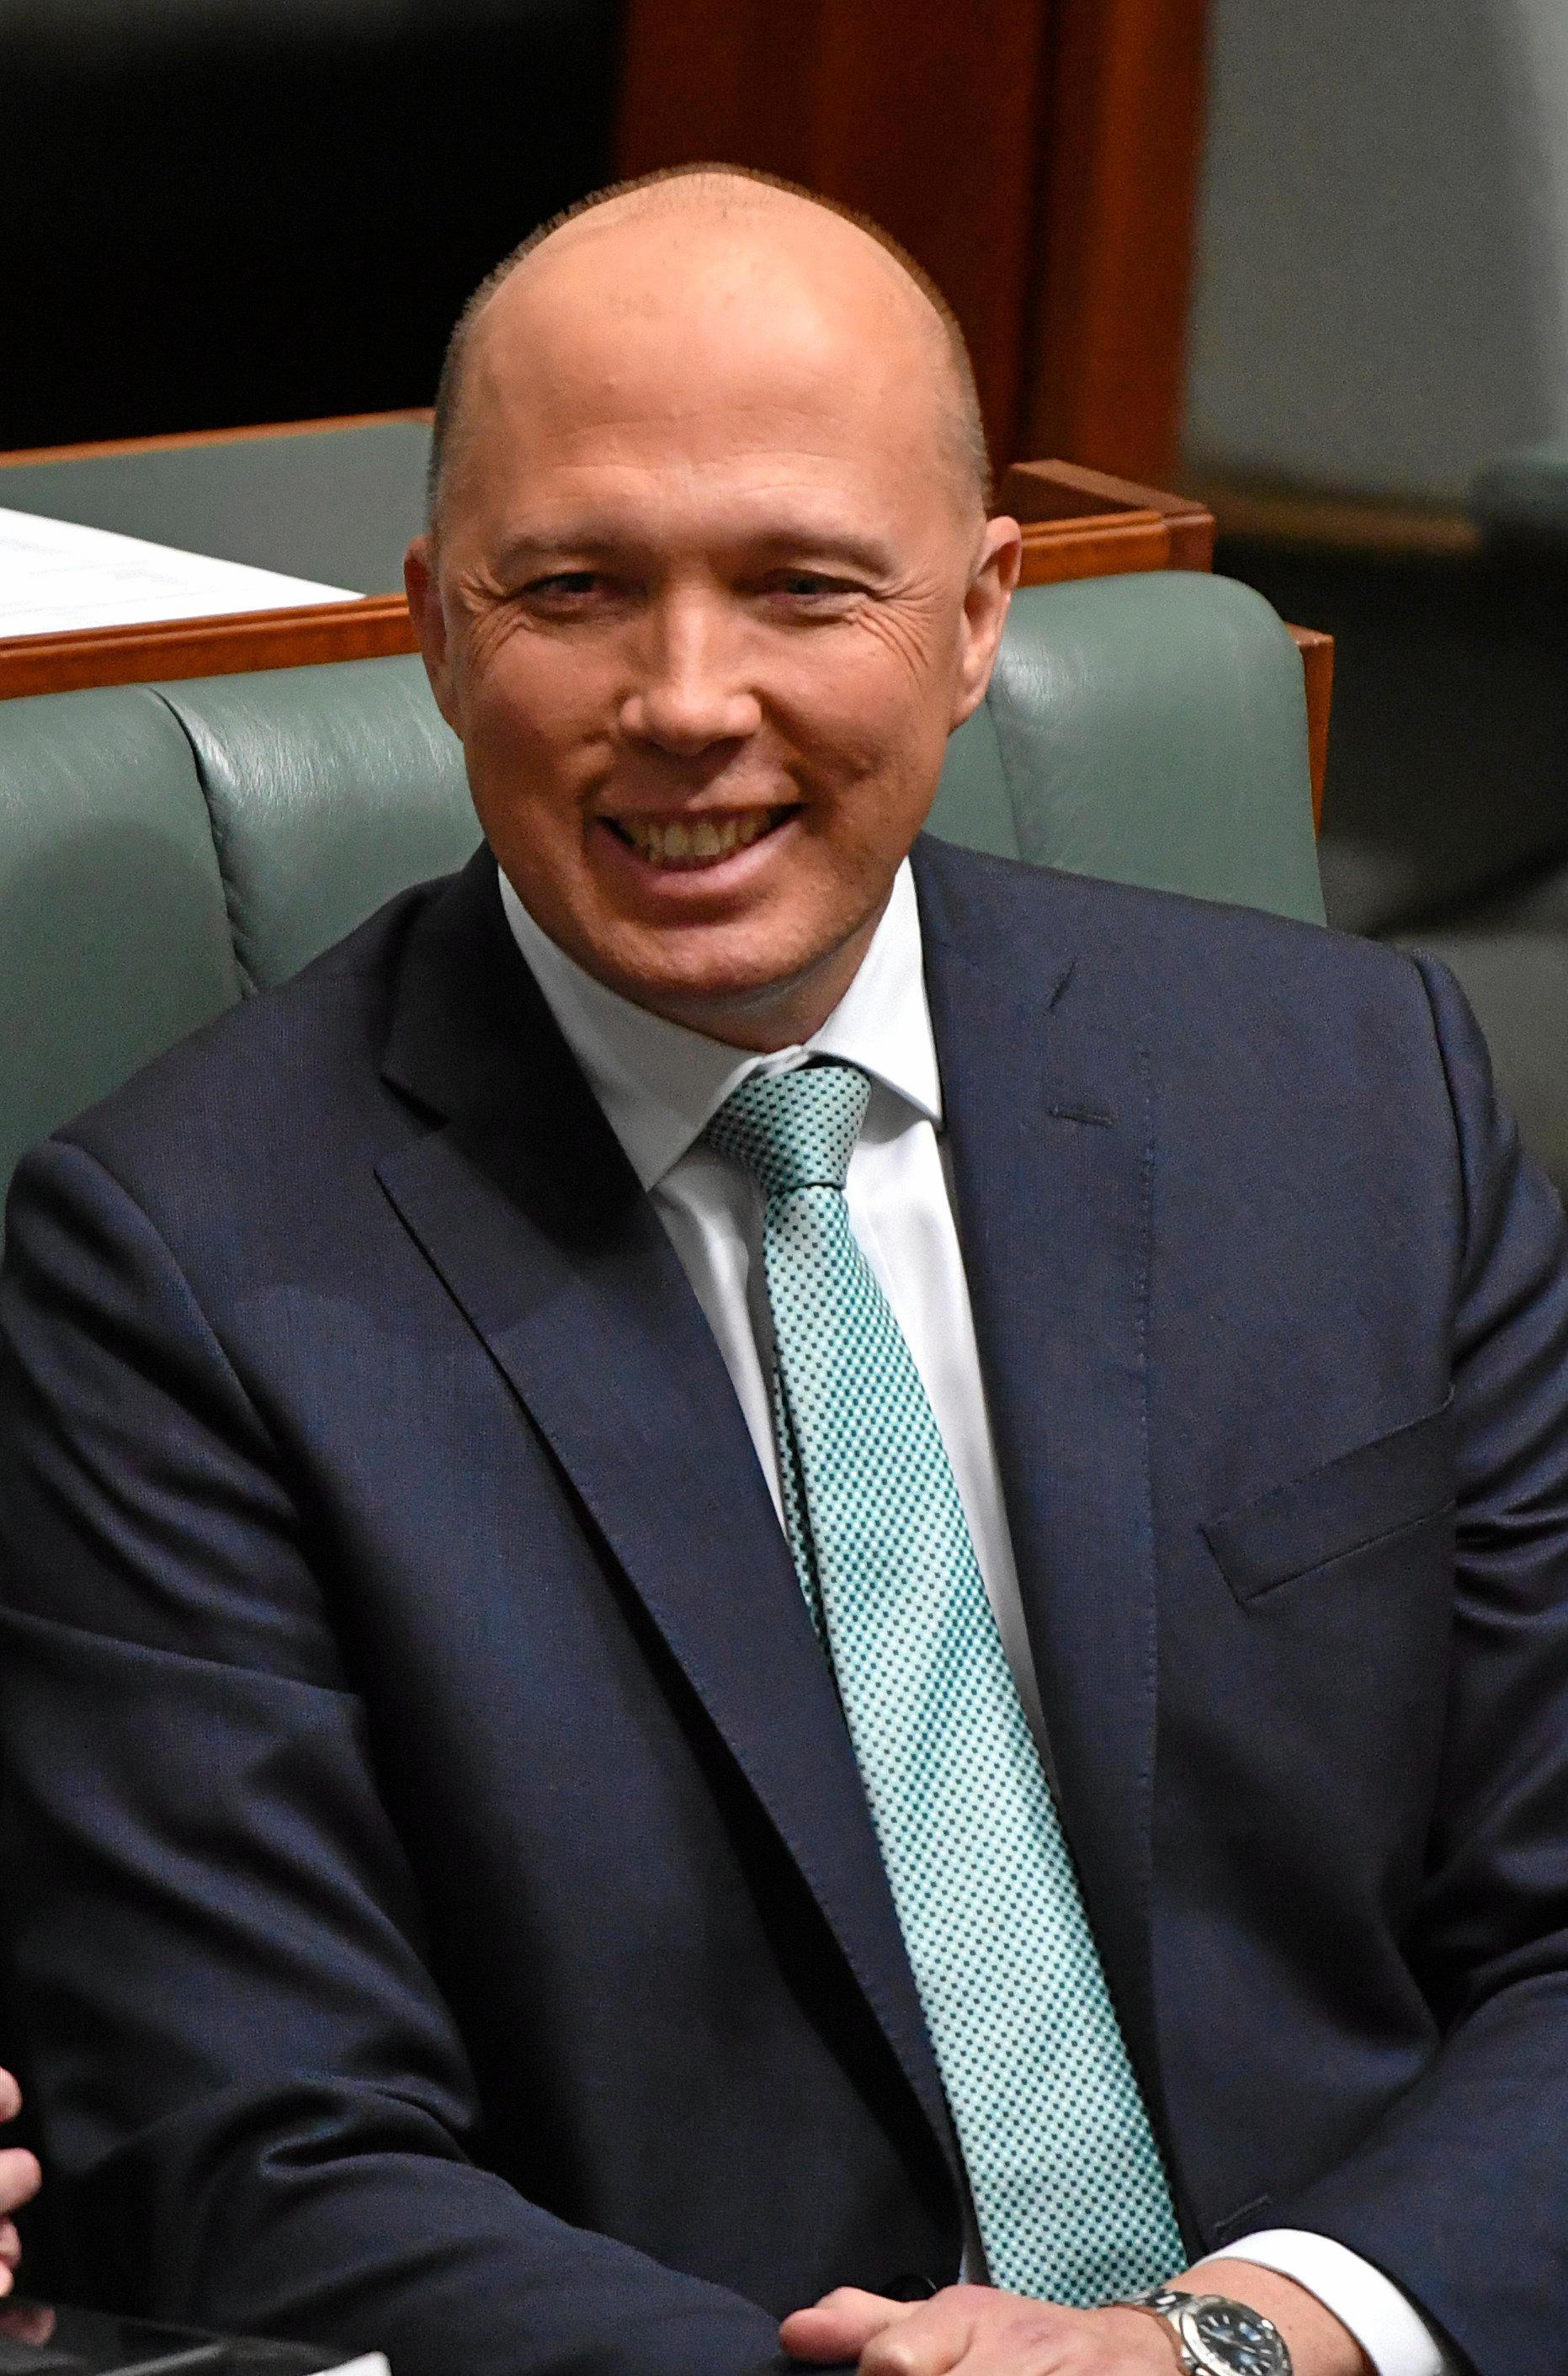 Former minister for Home Affairs Peter Dutton during a division in the House of Representatives at Parliament House in Canberra, Thursday, August 23, 2018. (AAP Image/Mick Tsikas) NO ARCHIVING